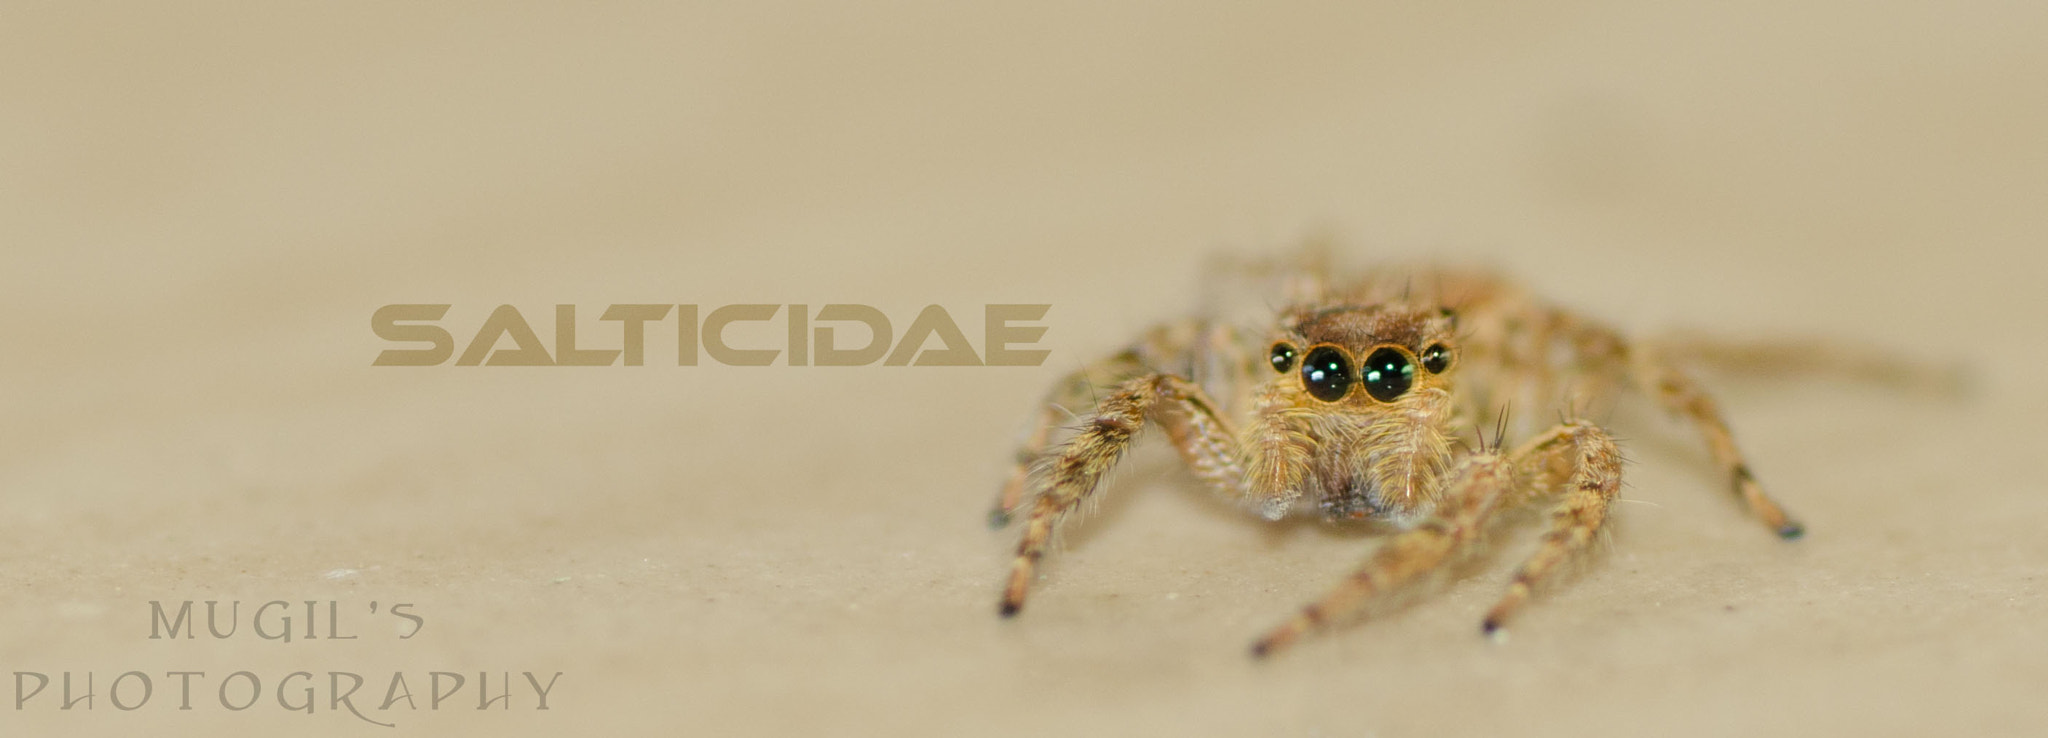 Photograph Salticidae by Mugil photography on 500px